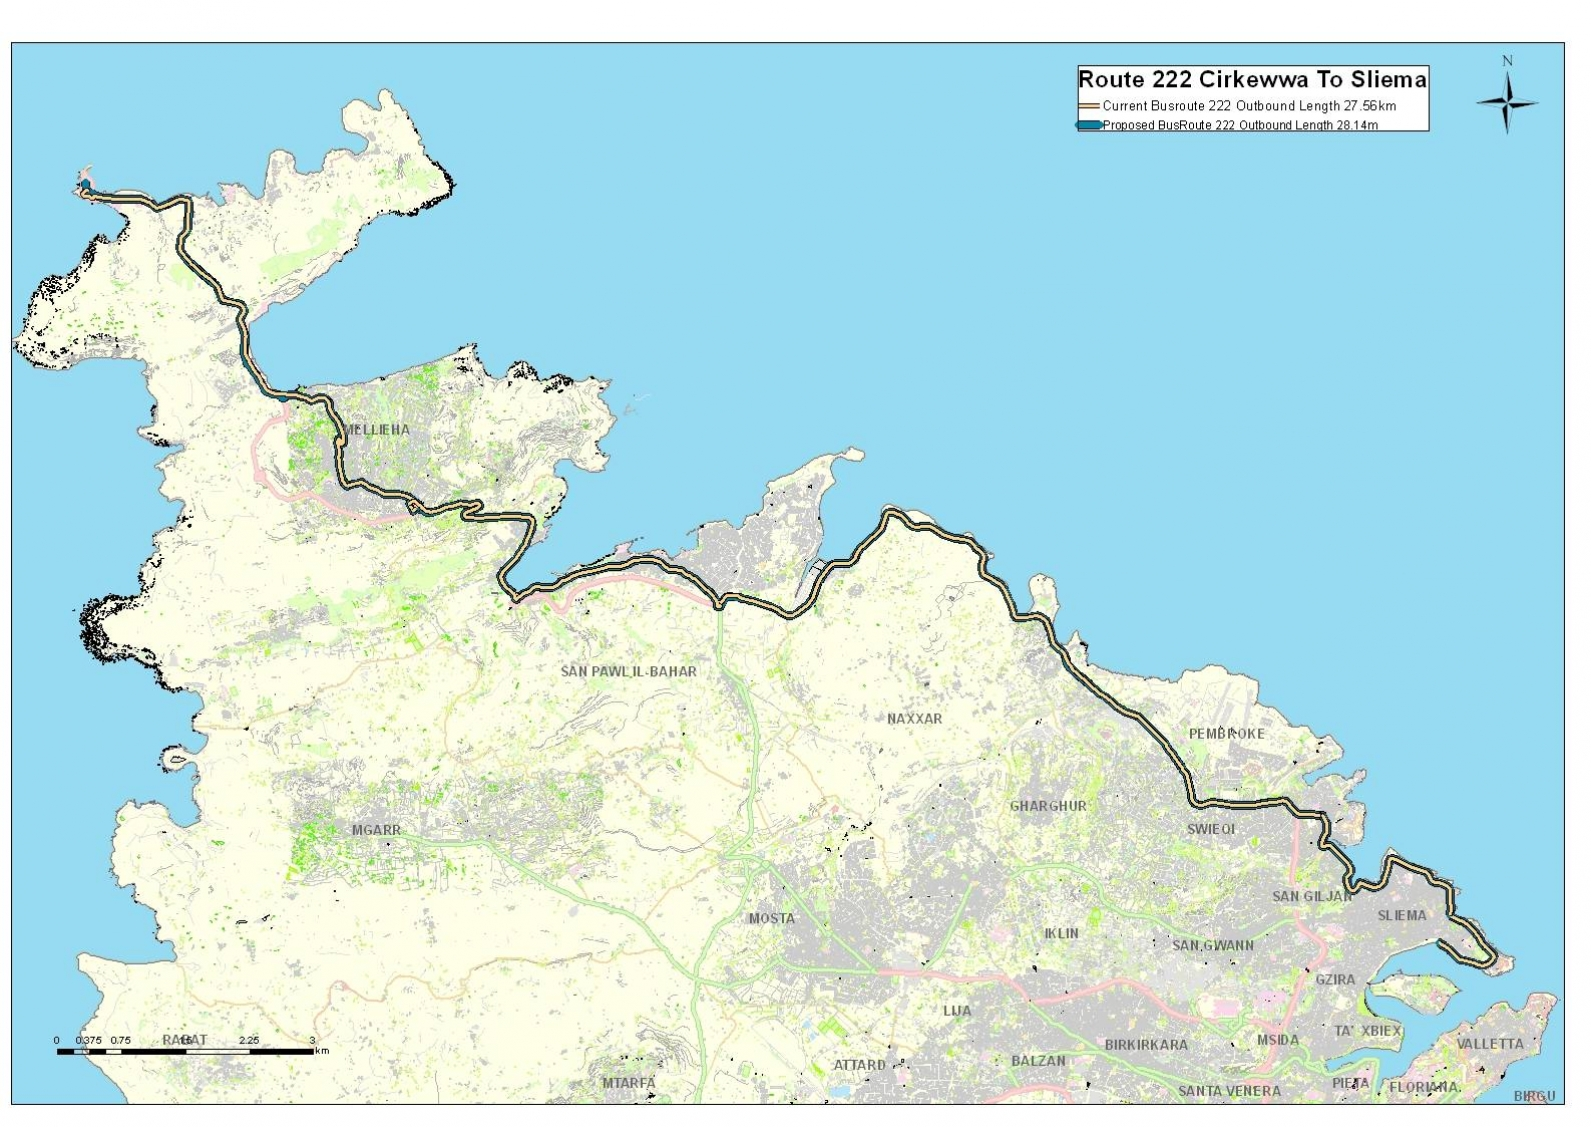 Land-current-network-routes-and-schedules-Cirkewwa-mellieha-sliema-12